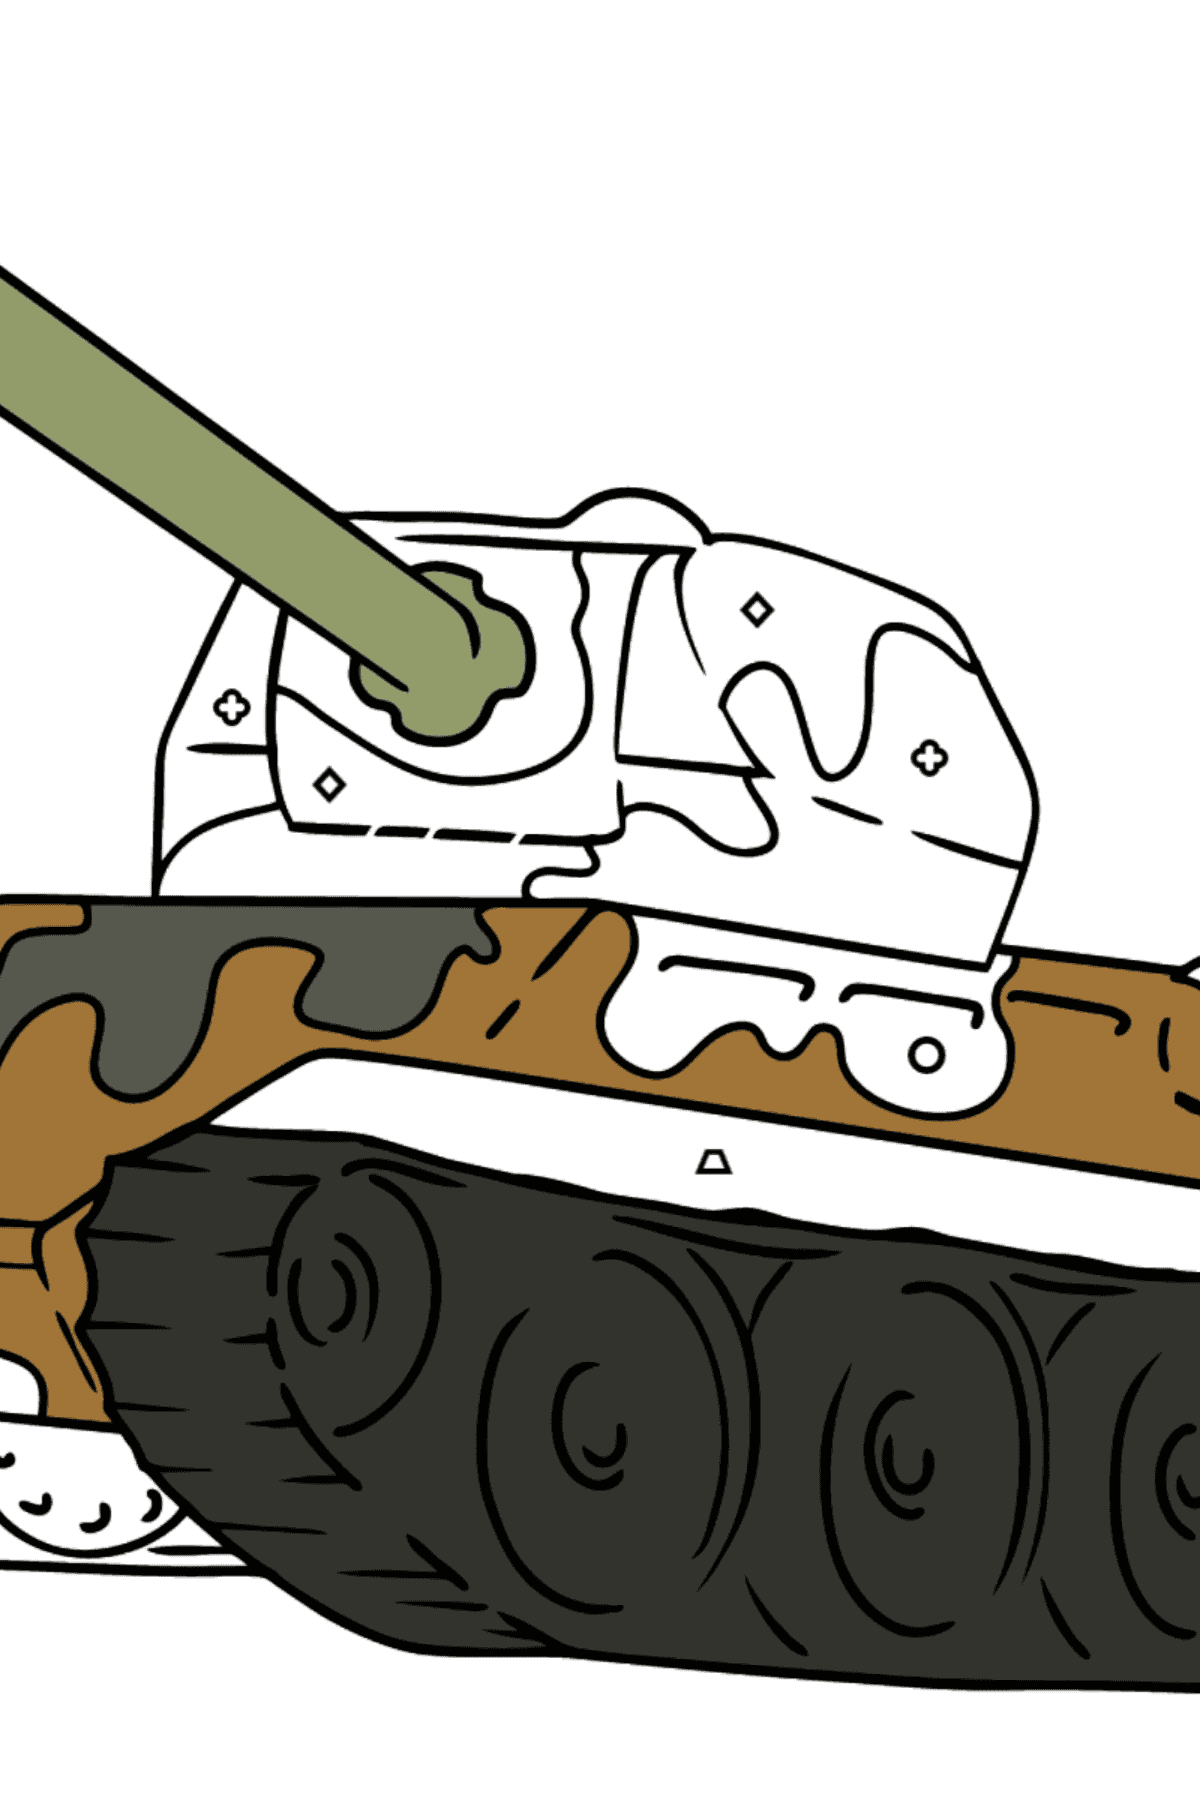 Tank with Anti-Aircraft Gun coloring page - Coloring by Geometric Shapes for Kids